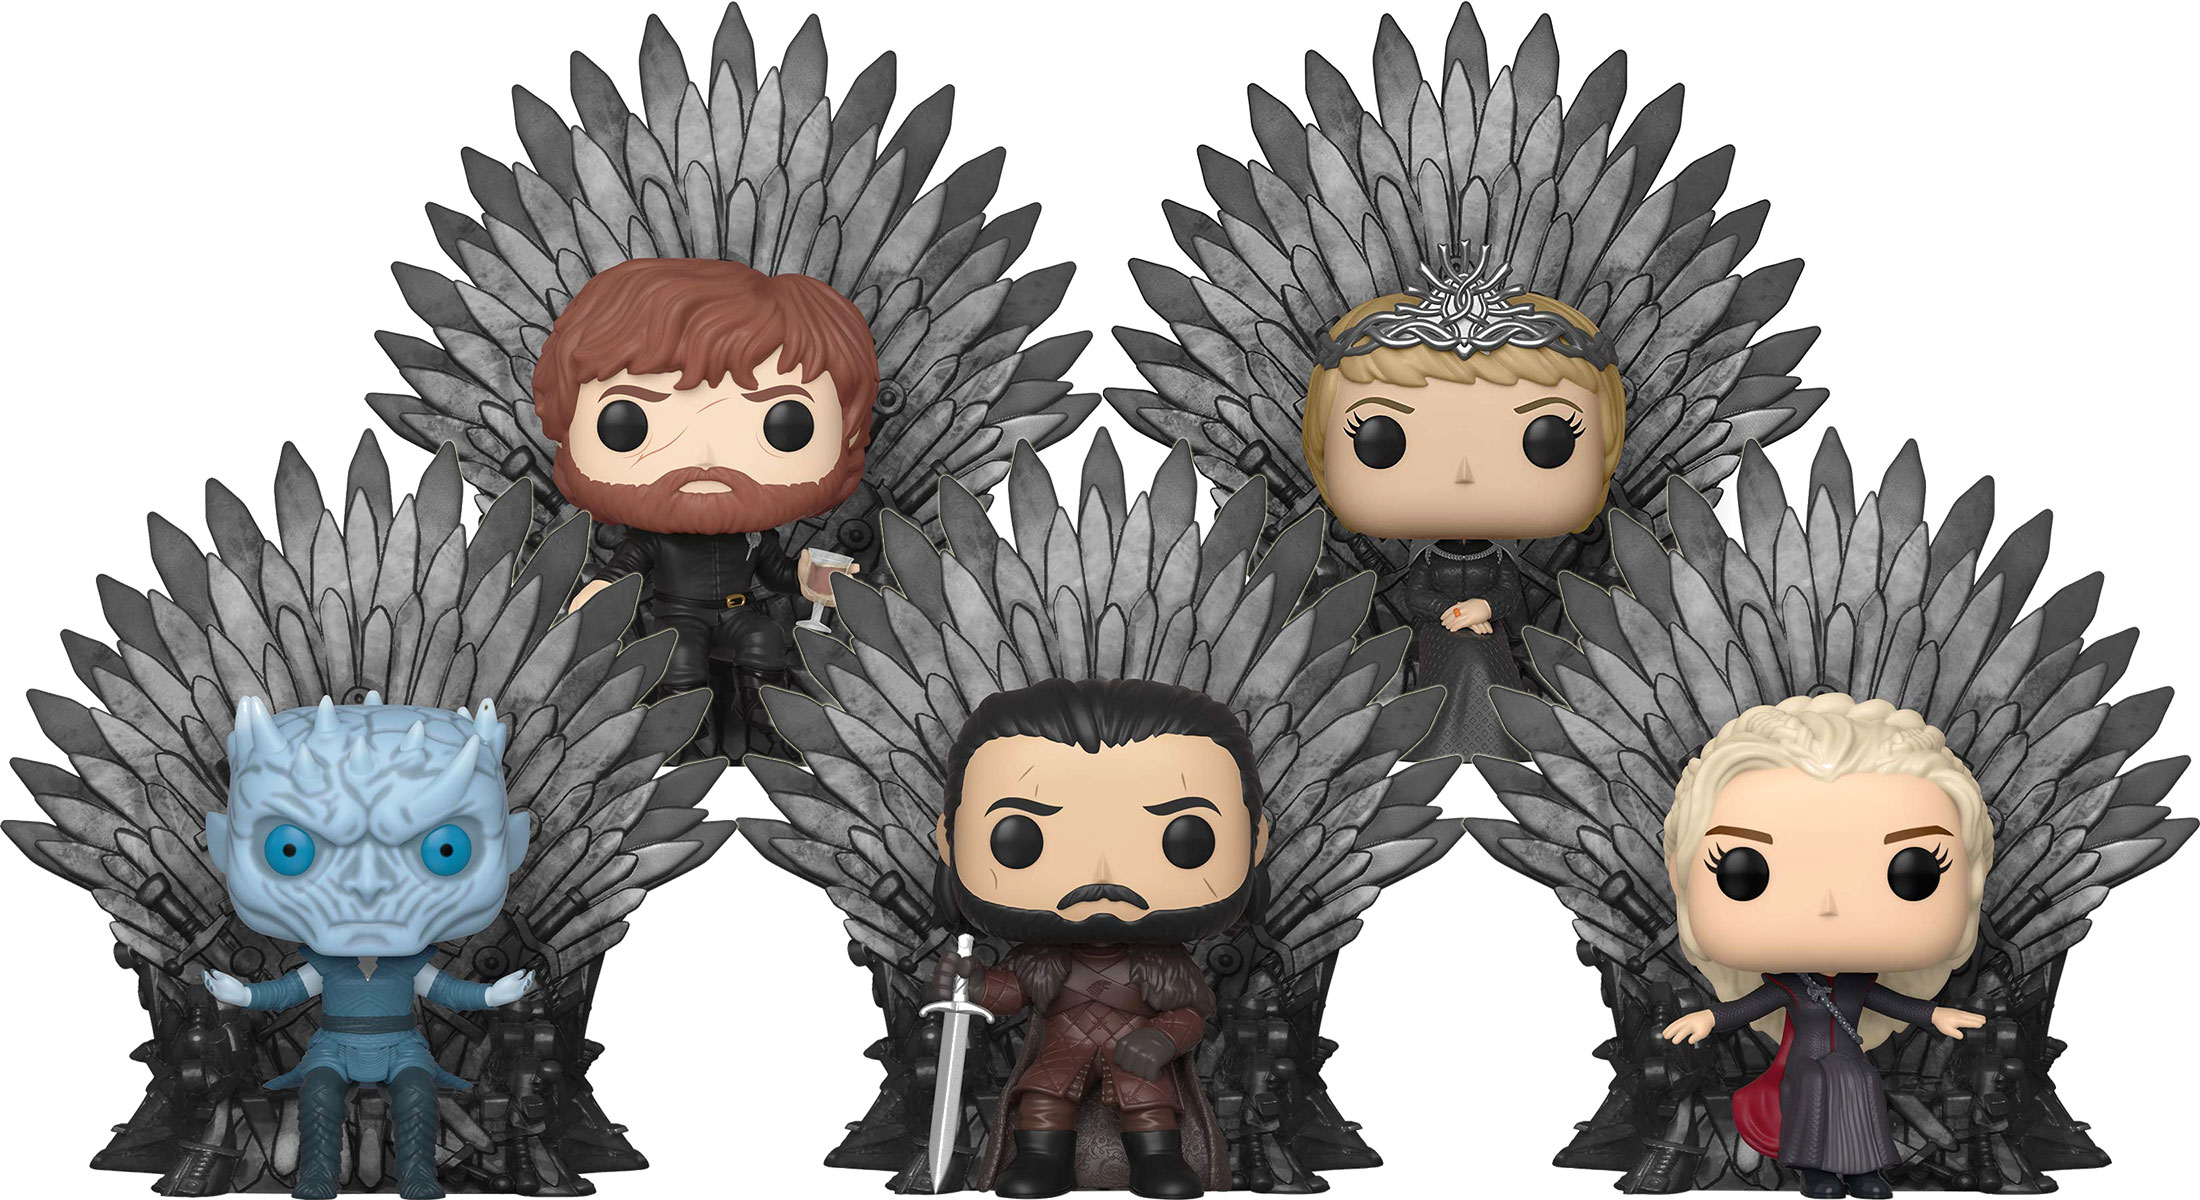 2019, Toy NUEVO Jon Snow Sitting On Iron Throne Funko Pop! Game Of Thrones